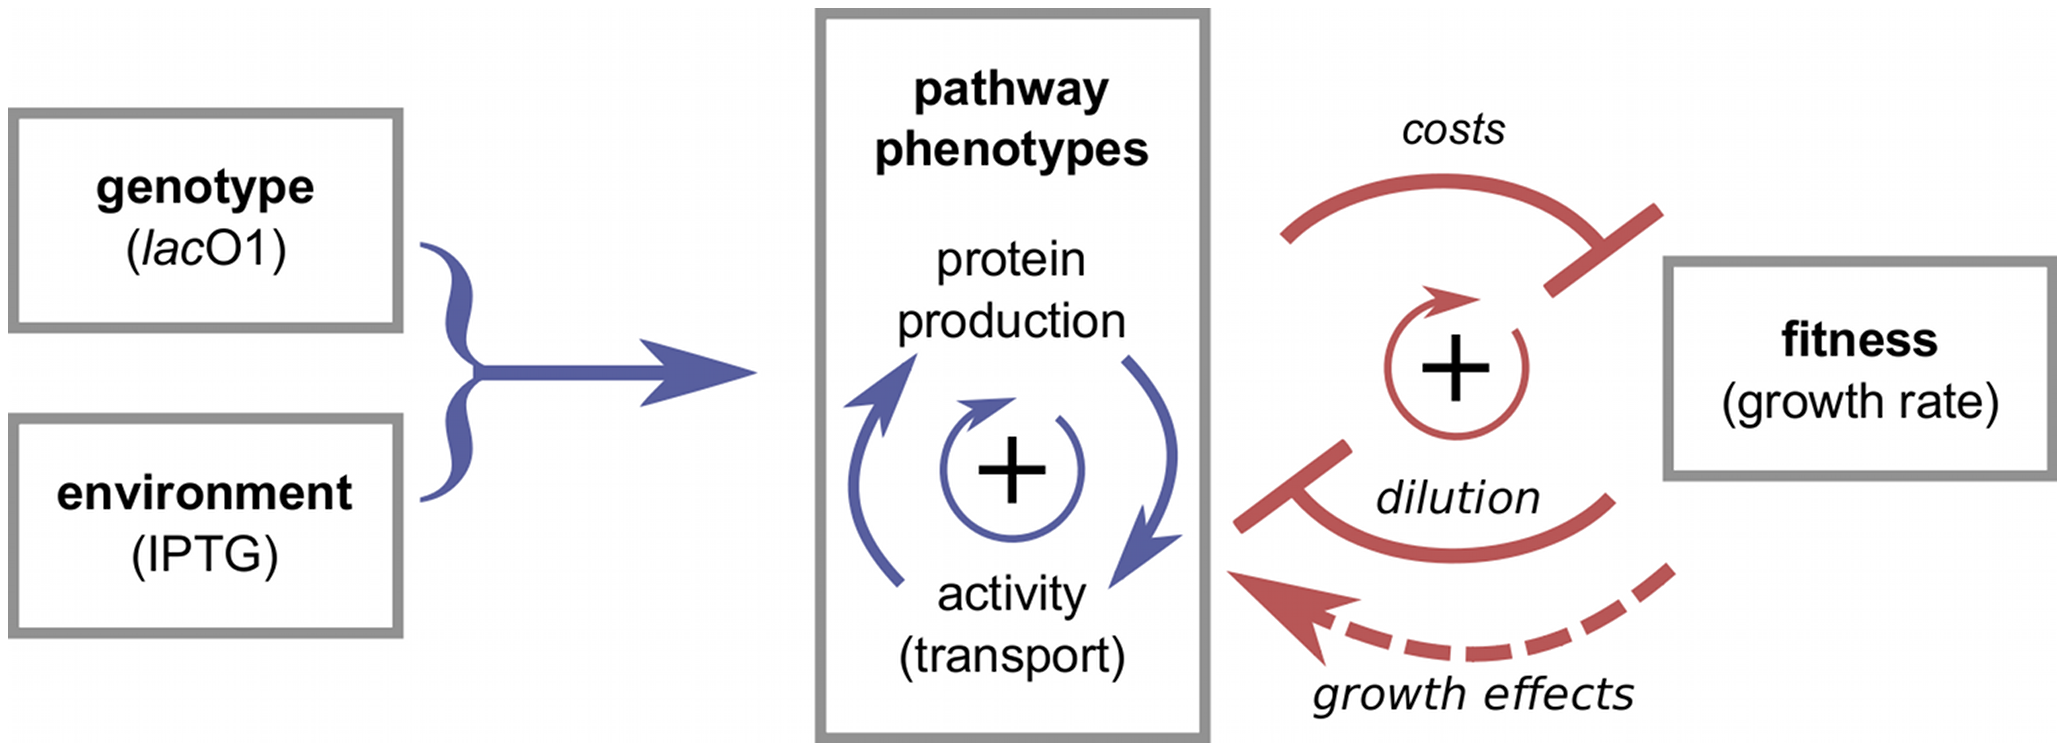 From genotype and environment to pathway phenotypes and fitness.